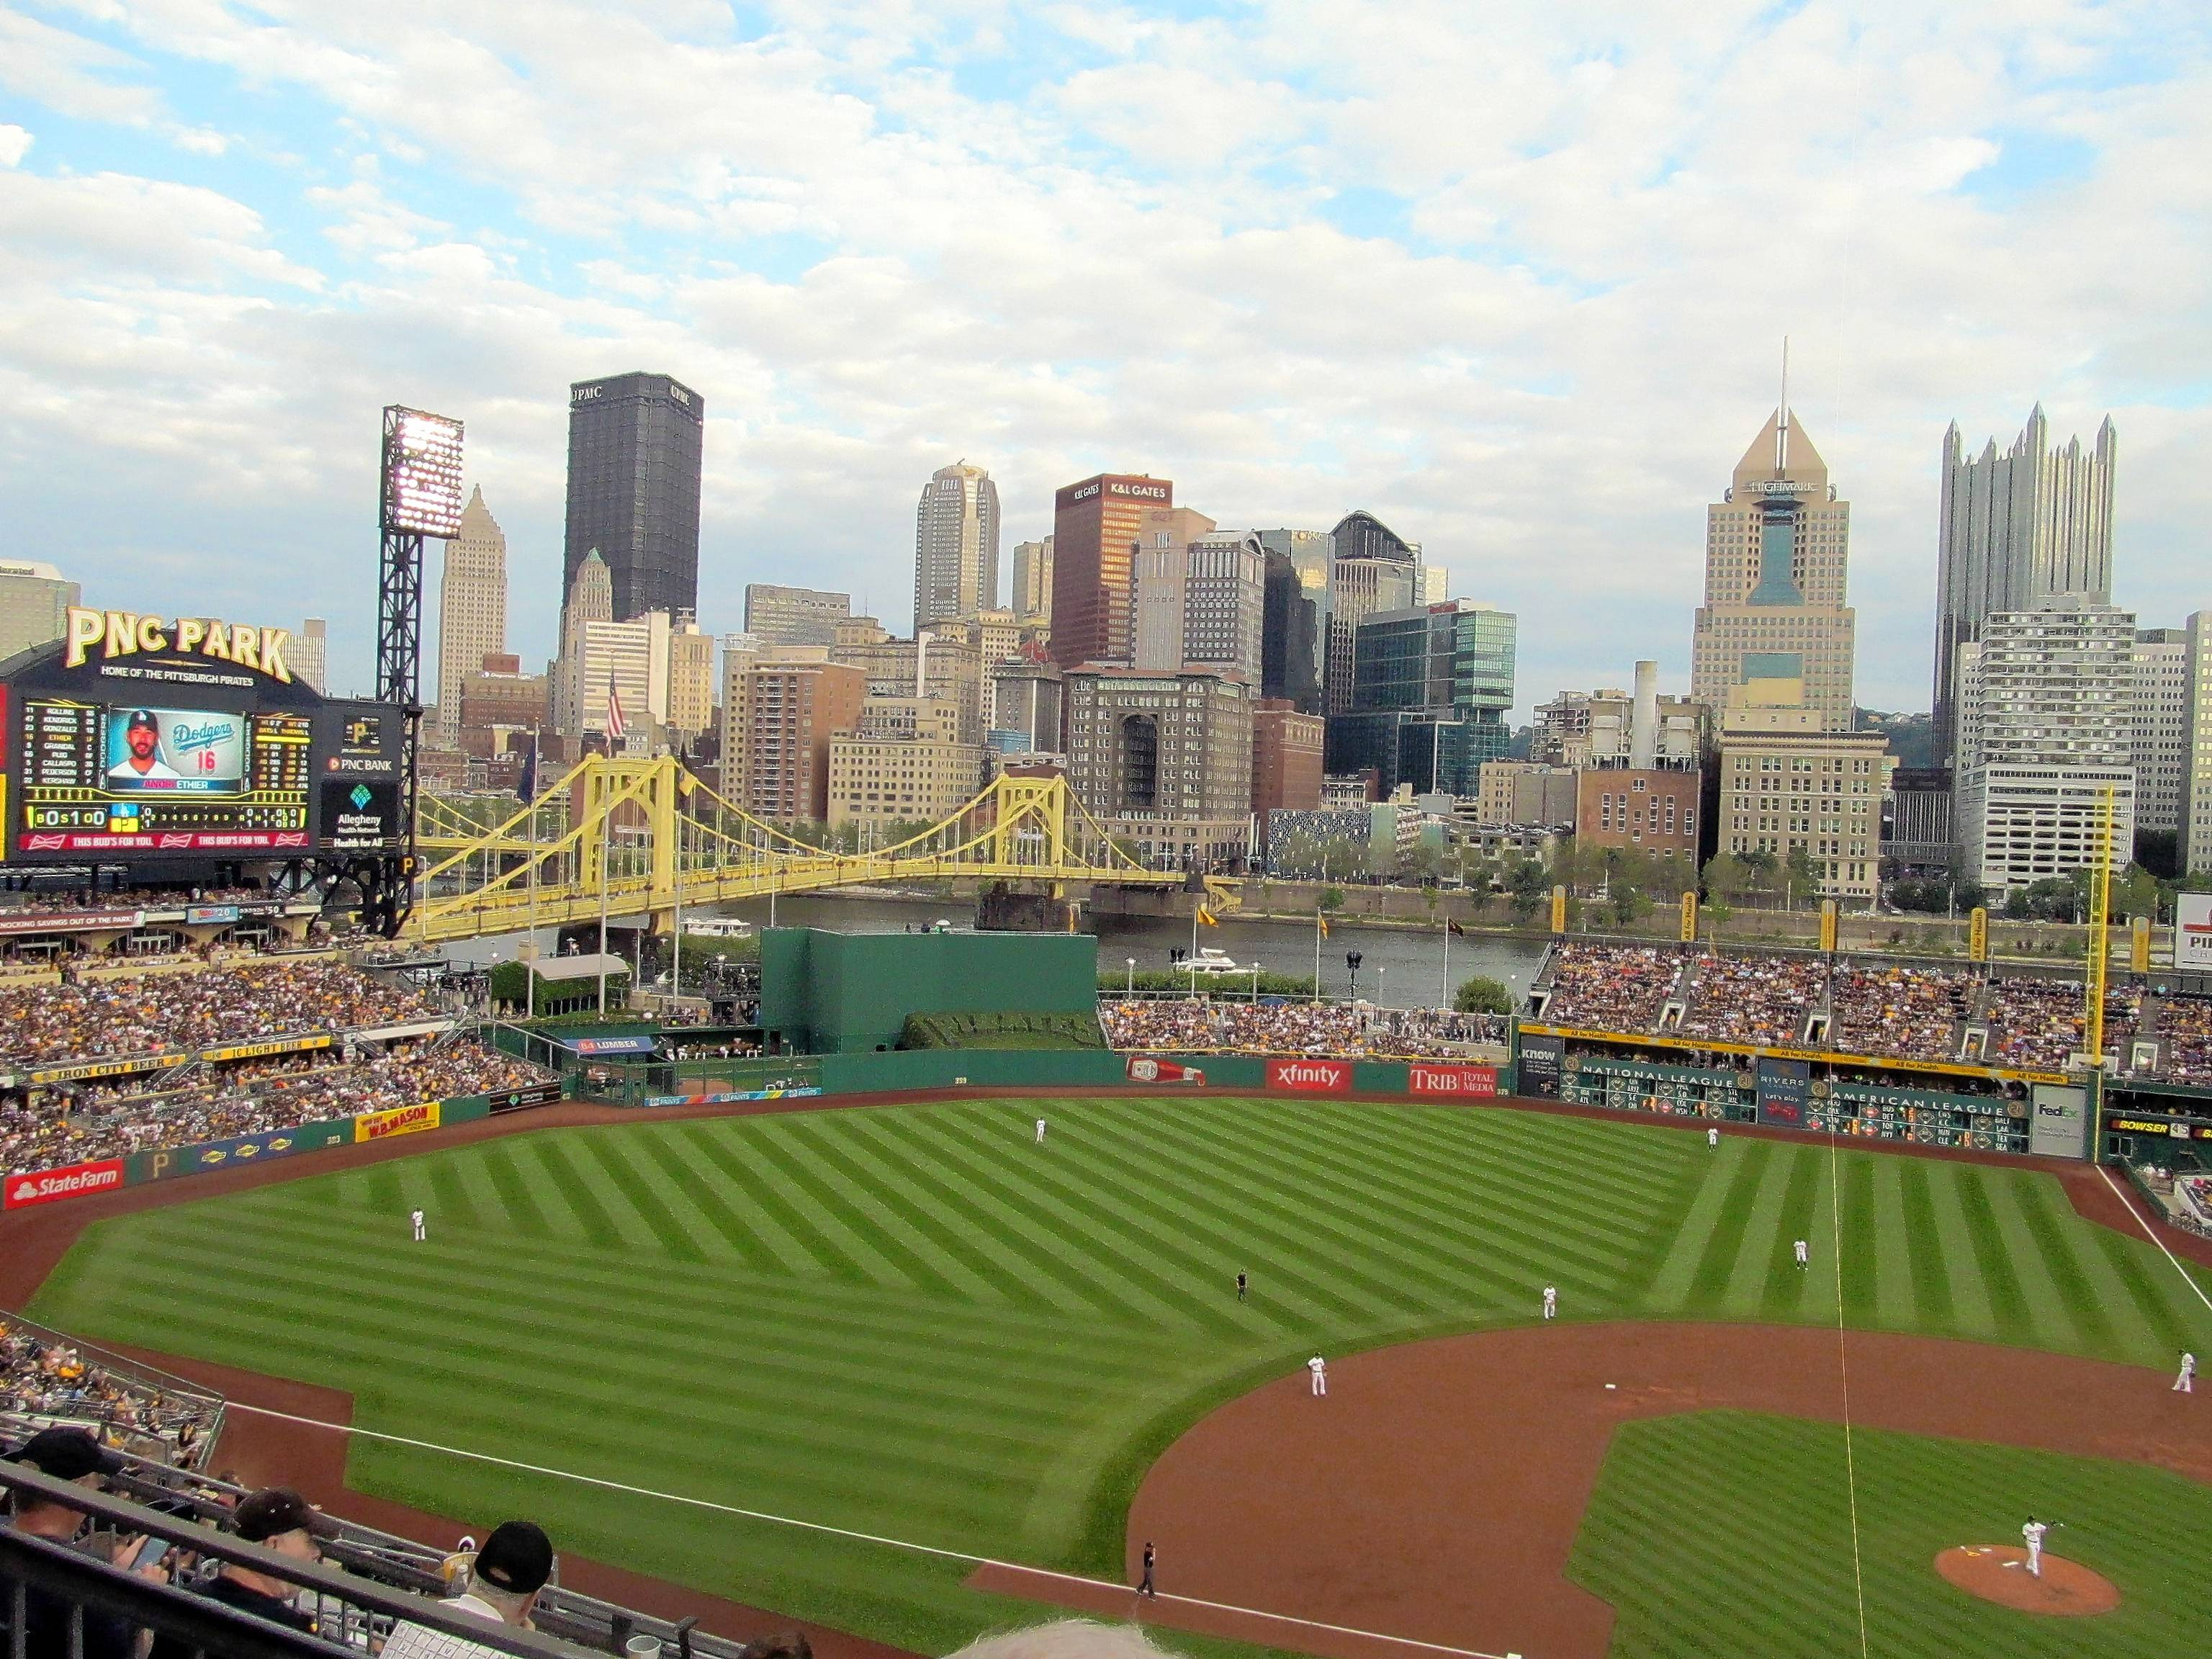 Cubs playoff tickets in Pittsburgh a third of the cost of Chicago prices